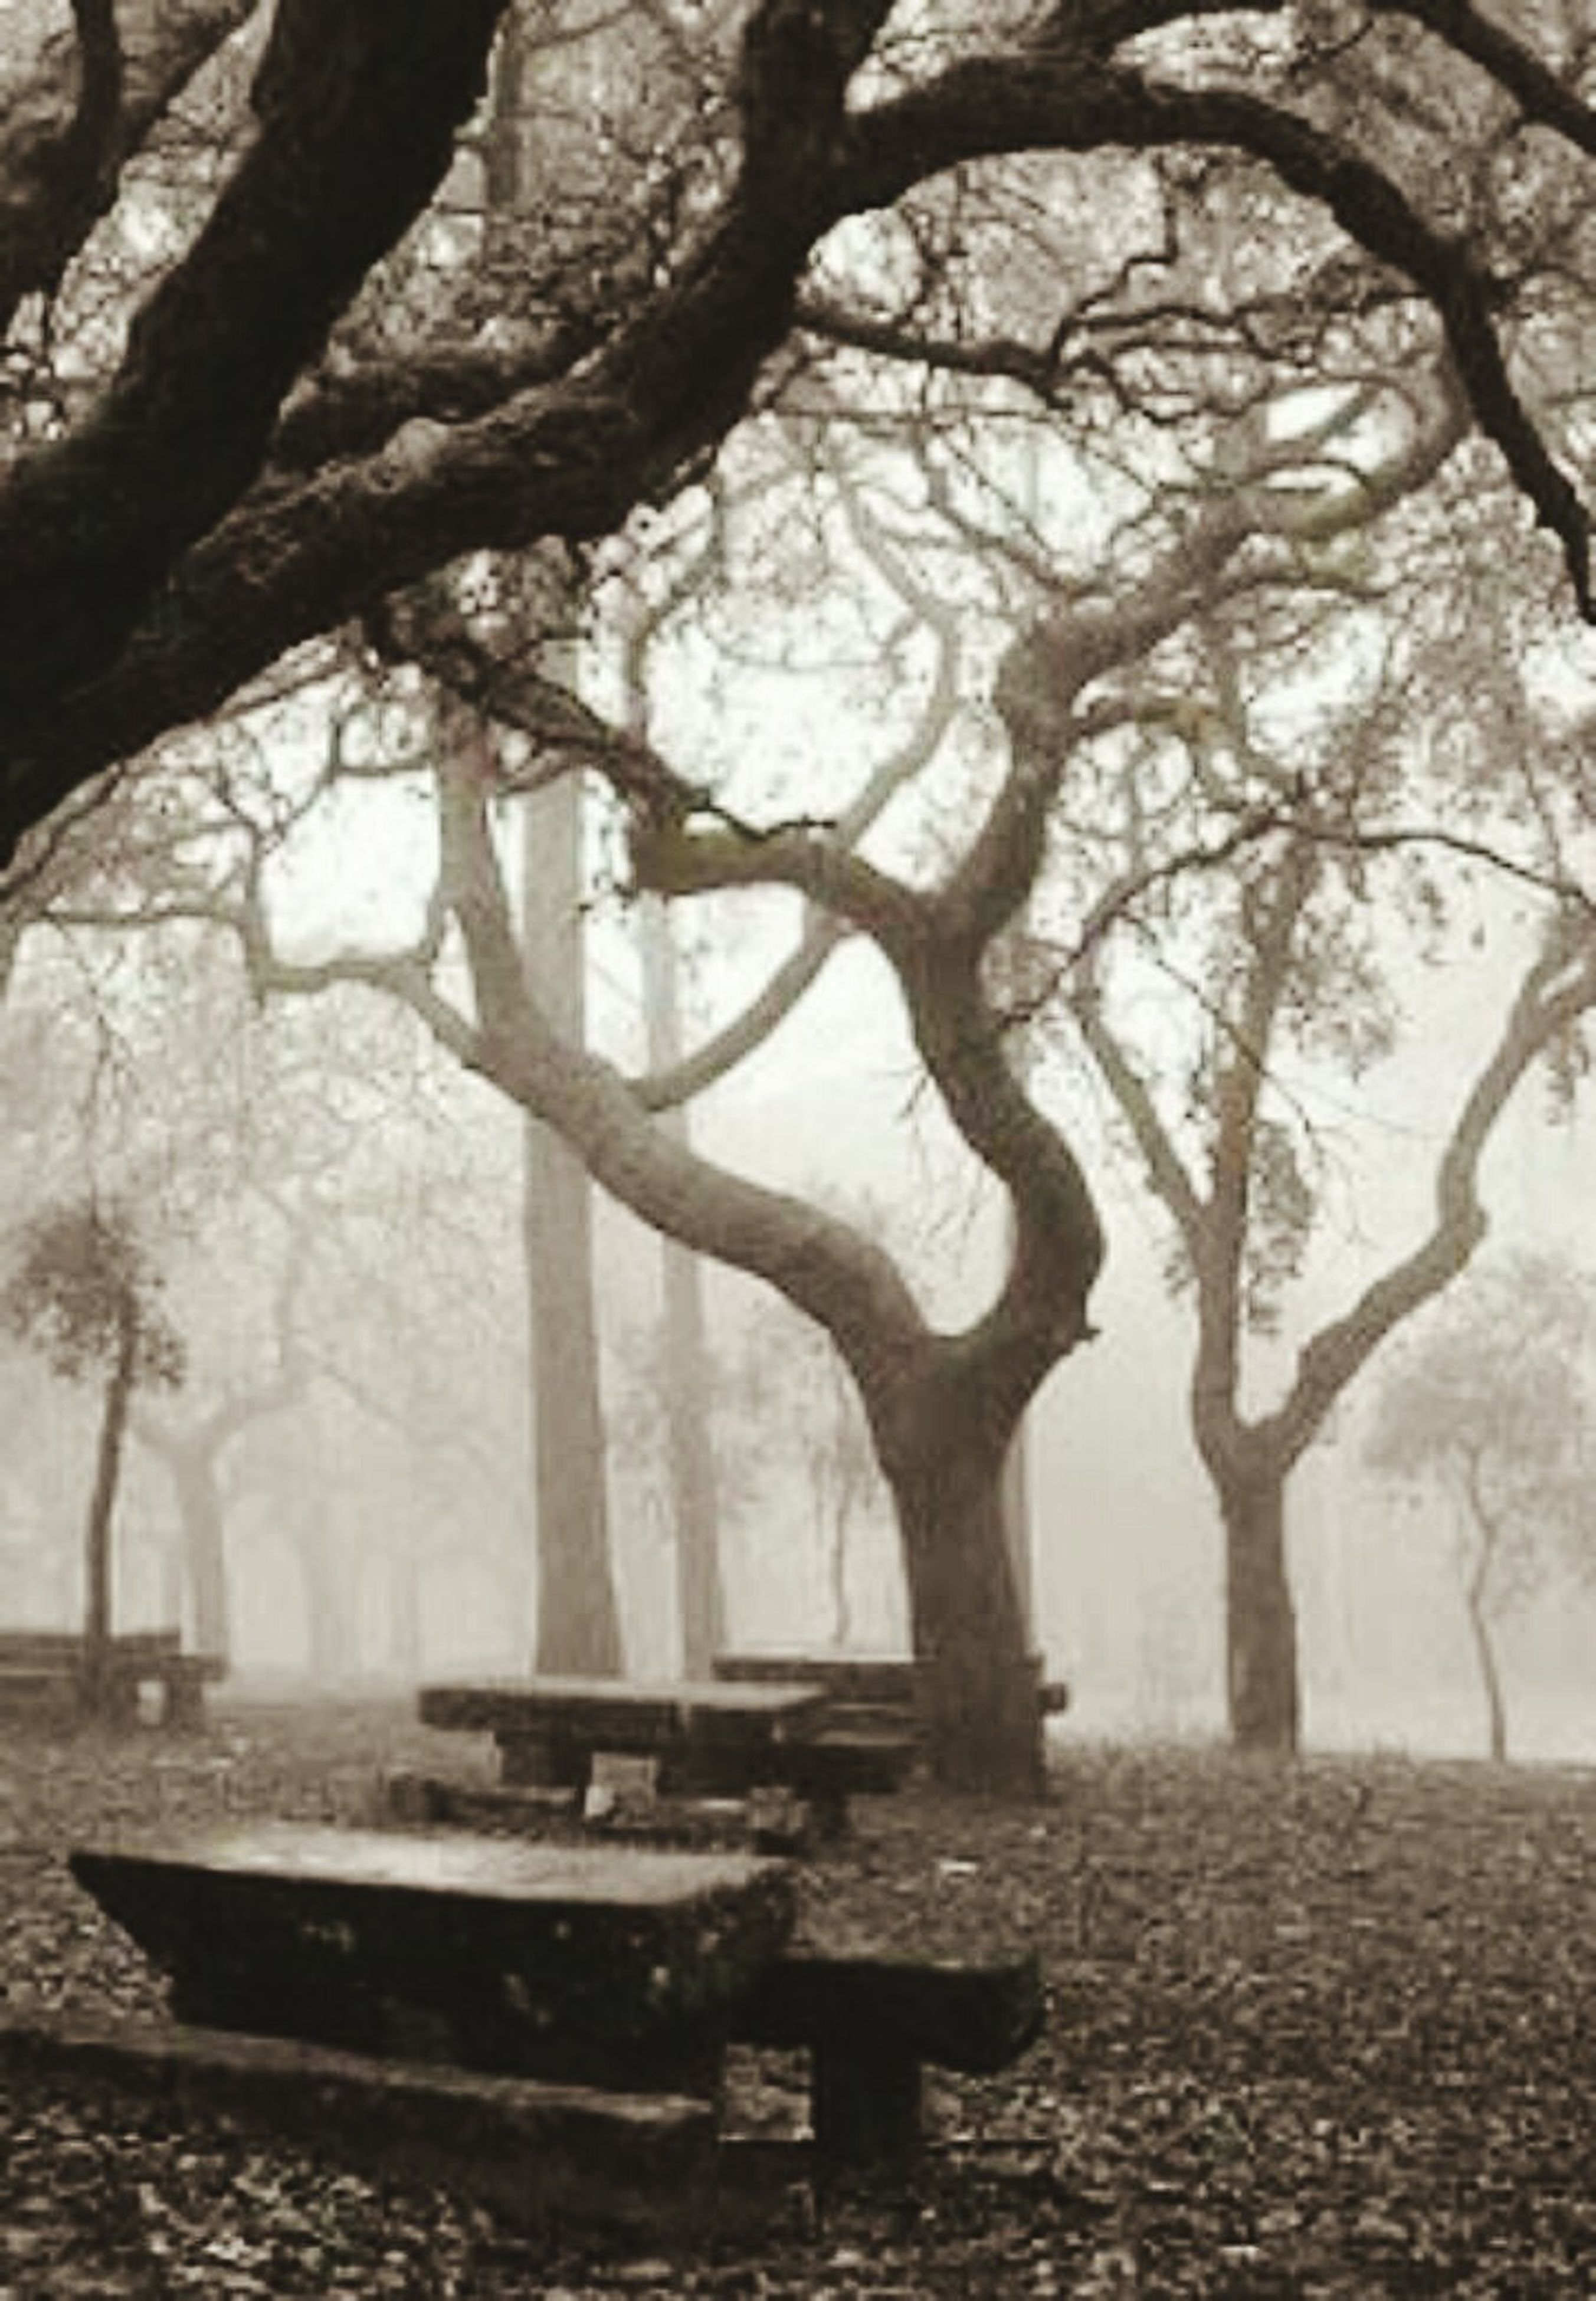 tree, branch, tree trunk, bare tree, tranquility, bench, park - man made space, nature, tranquil scene, empty, scenics, day, absence, wood - material, growth, park bench, outdoors, park, beauty in nature, no people